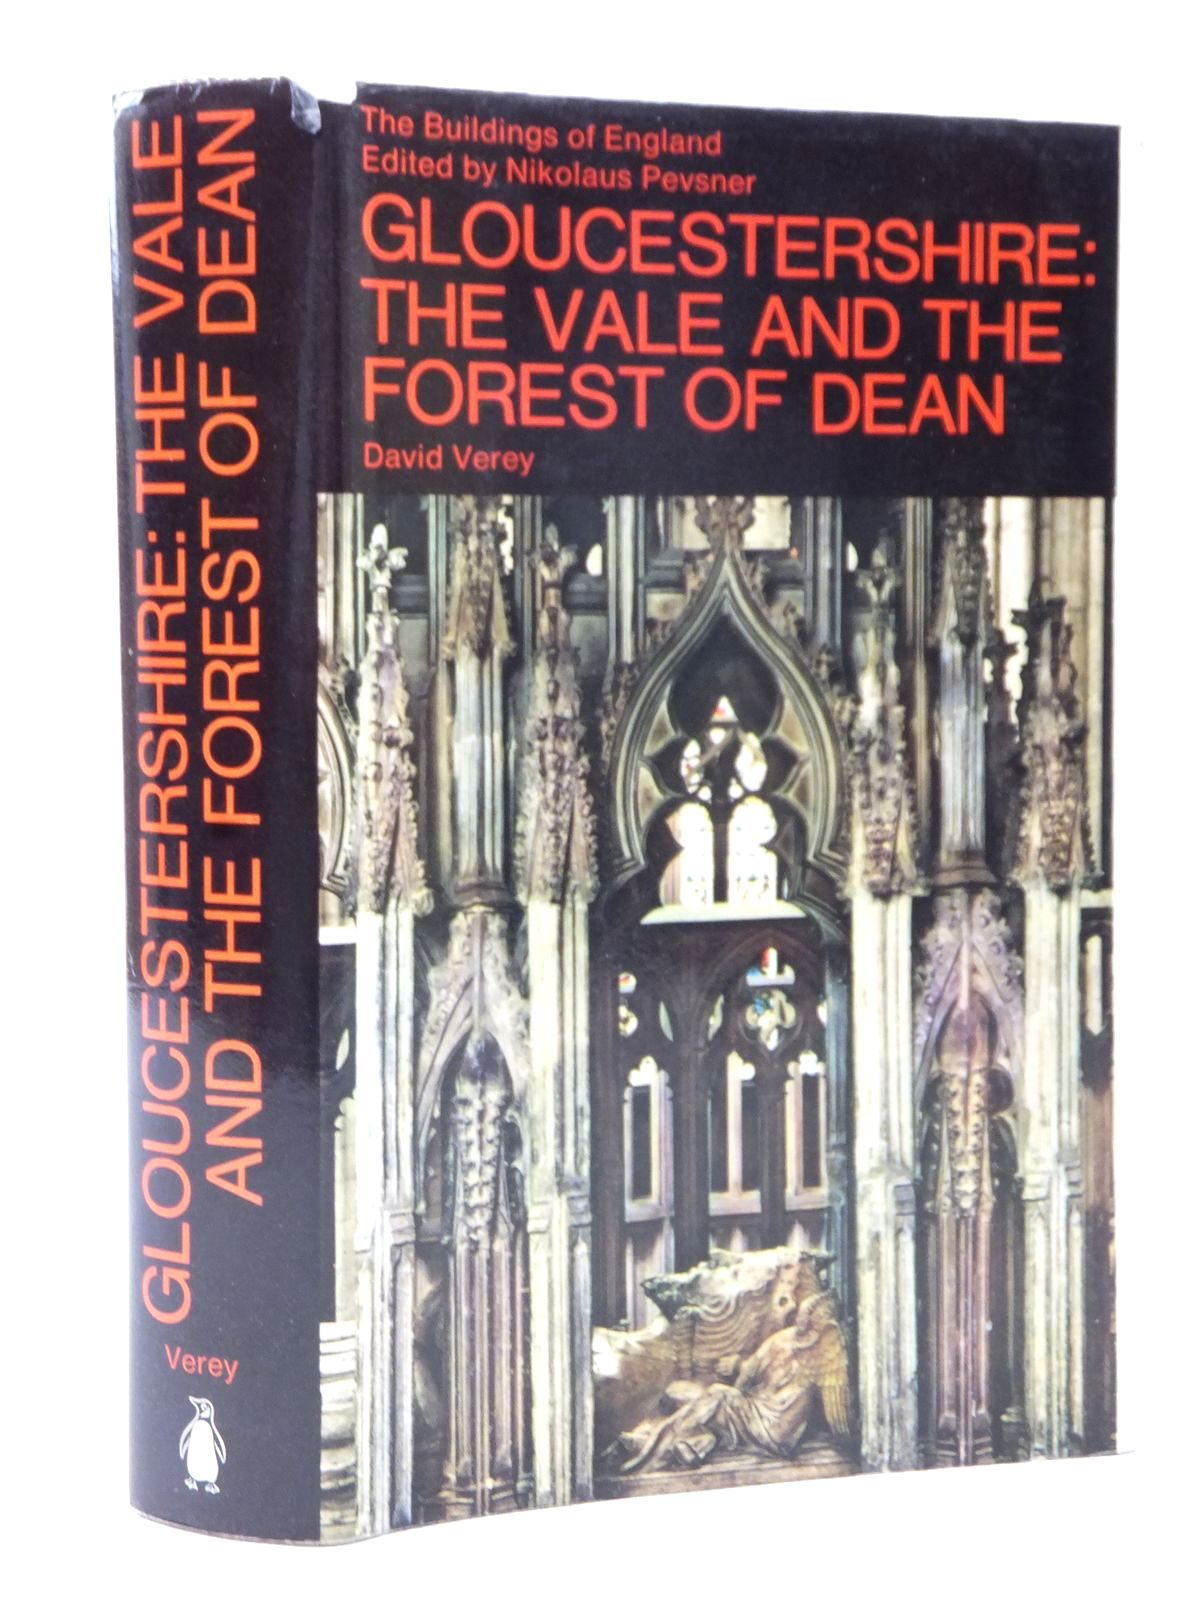 Photo of GLOUCESTERSHIRE 2: THE VALE AND THE FOREST OF DEAN (BUILDINGS OF ENGLAND) written by Verey, David<br />Pevsner, Nikolaus published by Penguin Books (STOCK CODE: 1609053)  for sale by Stella & Rose's Books